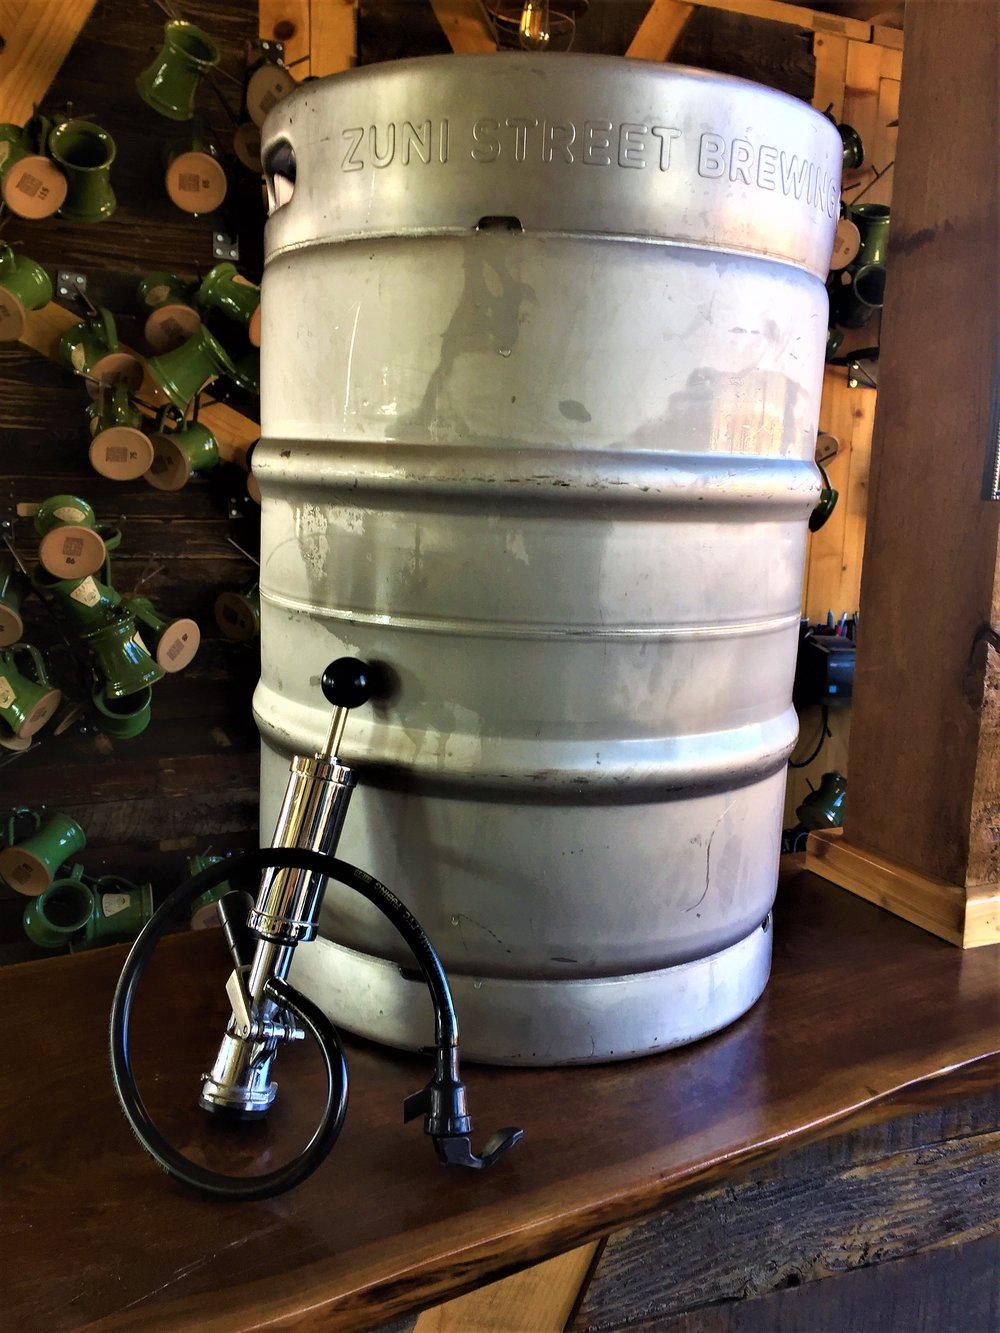 If you choose to keg your brew, we charge an $80 deposit which includes the use of one of our kegs as well as a party tap to dispense your beer with. Don't worry, we'll make sure to give you the full $80 back when you return our keg and tap.